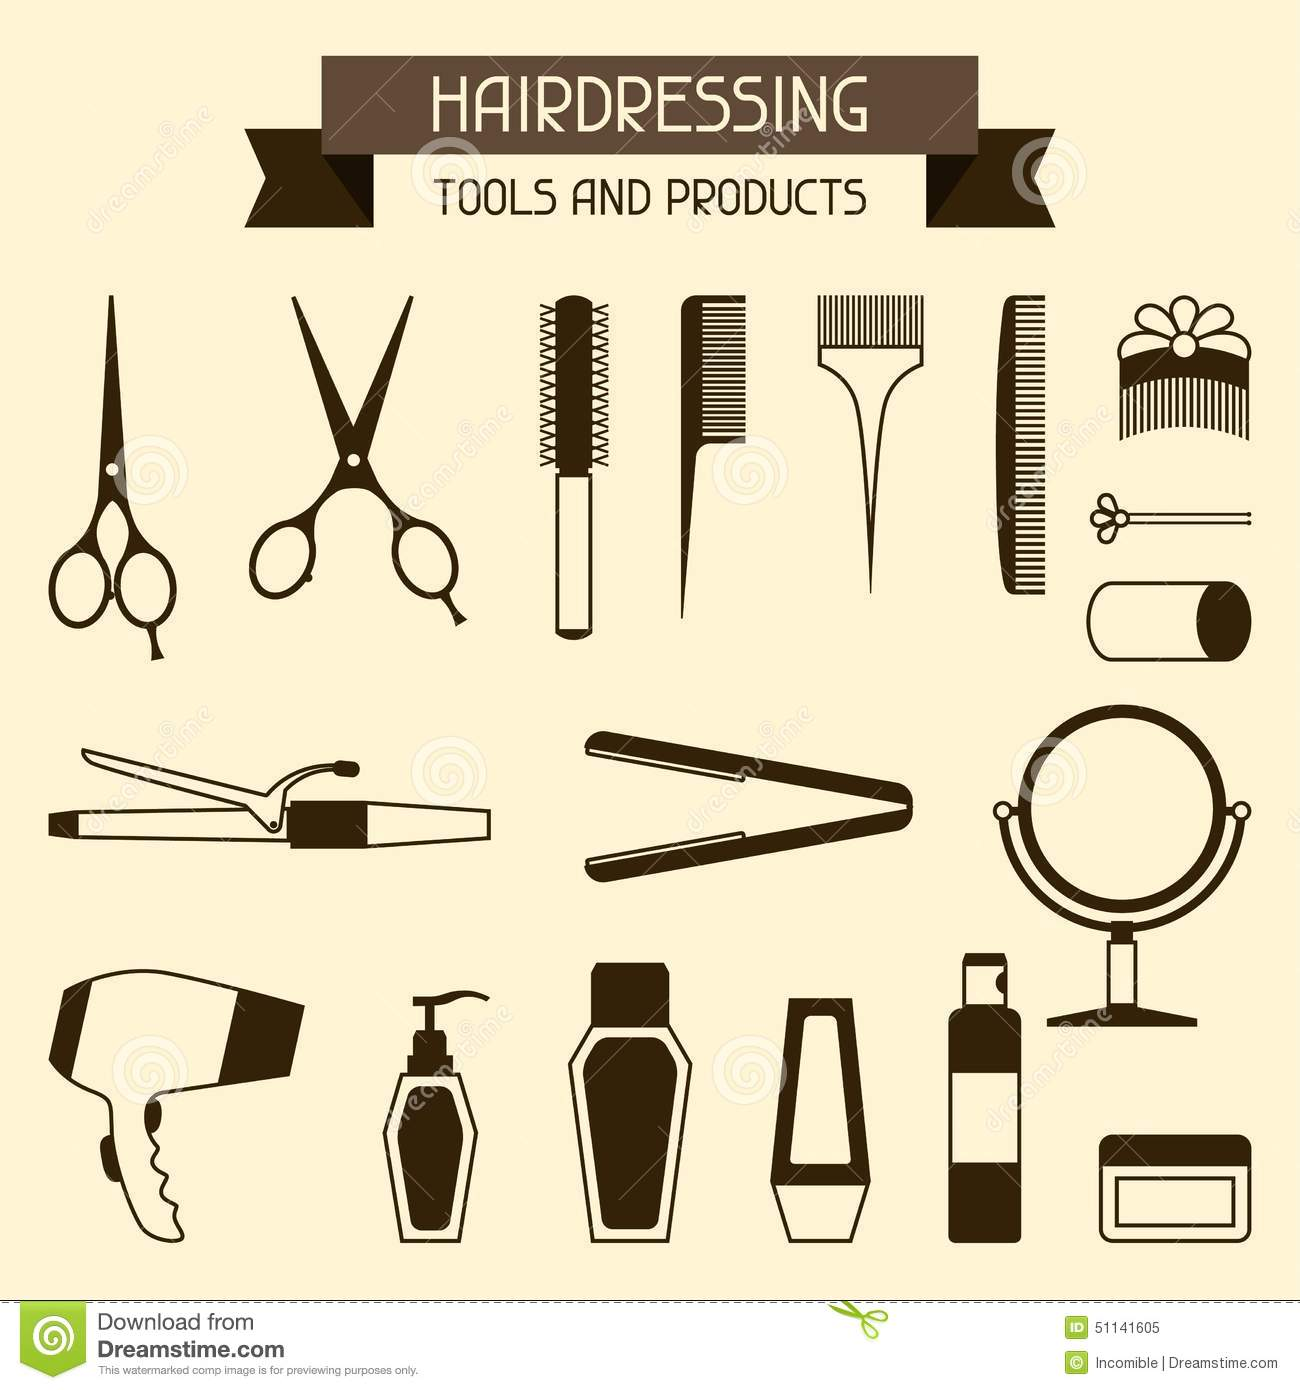 hairdressing tools and products stock vector illustration of